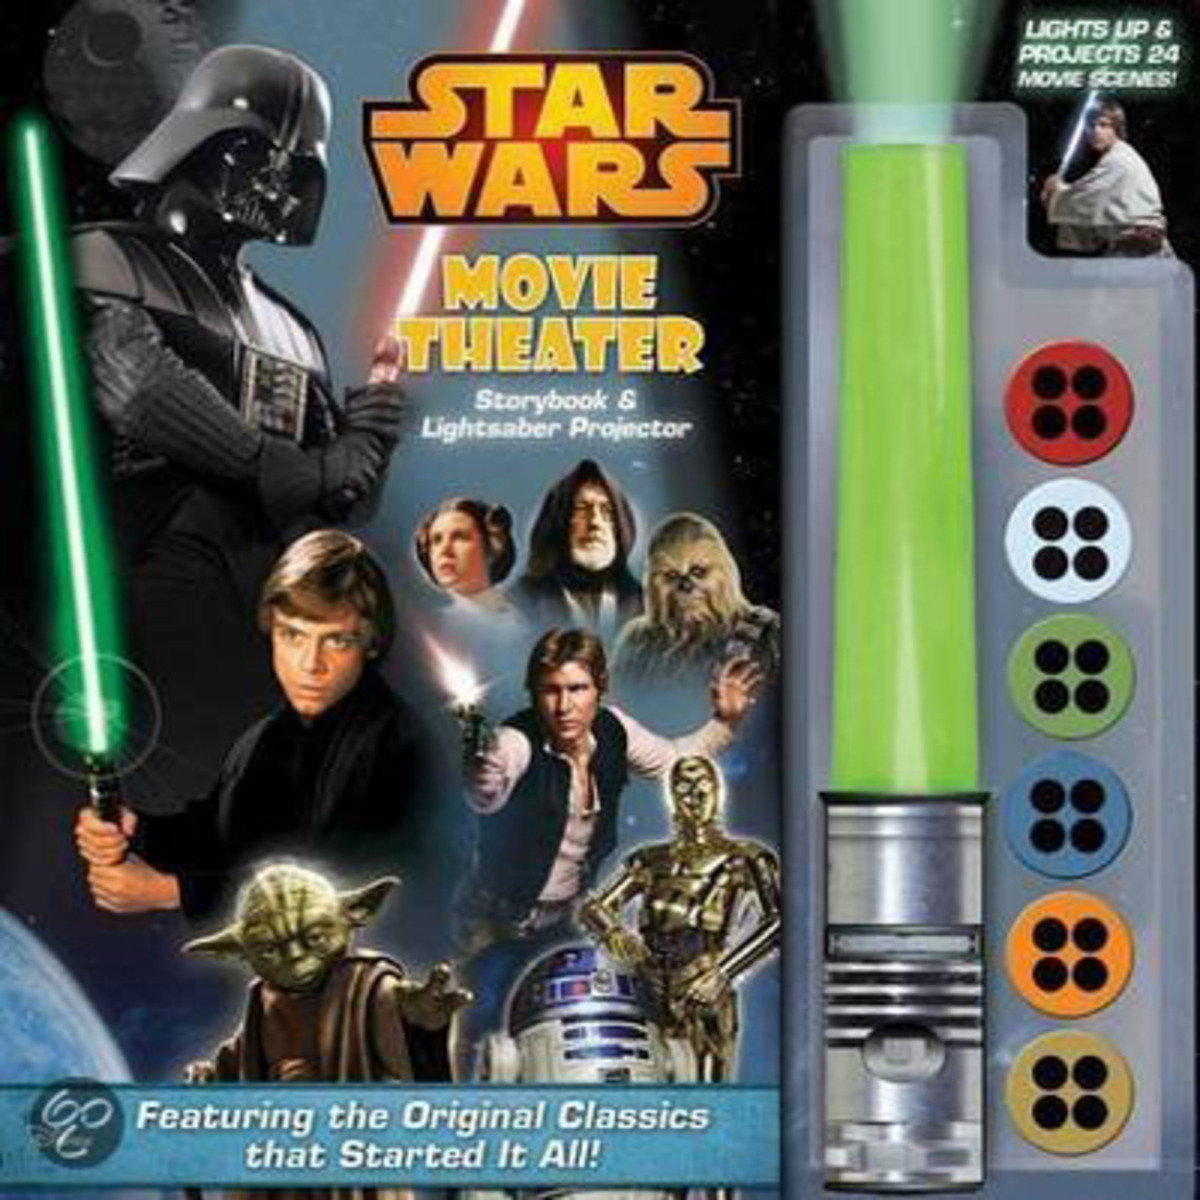 Star Wars Movie Theater Storybook & Lightsaber Projector 9780794434946